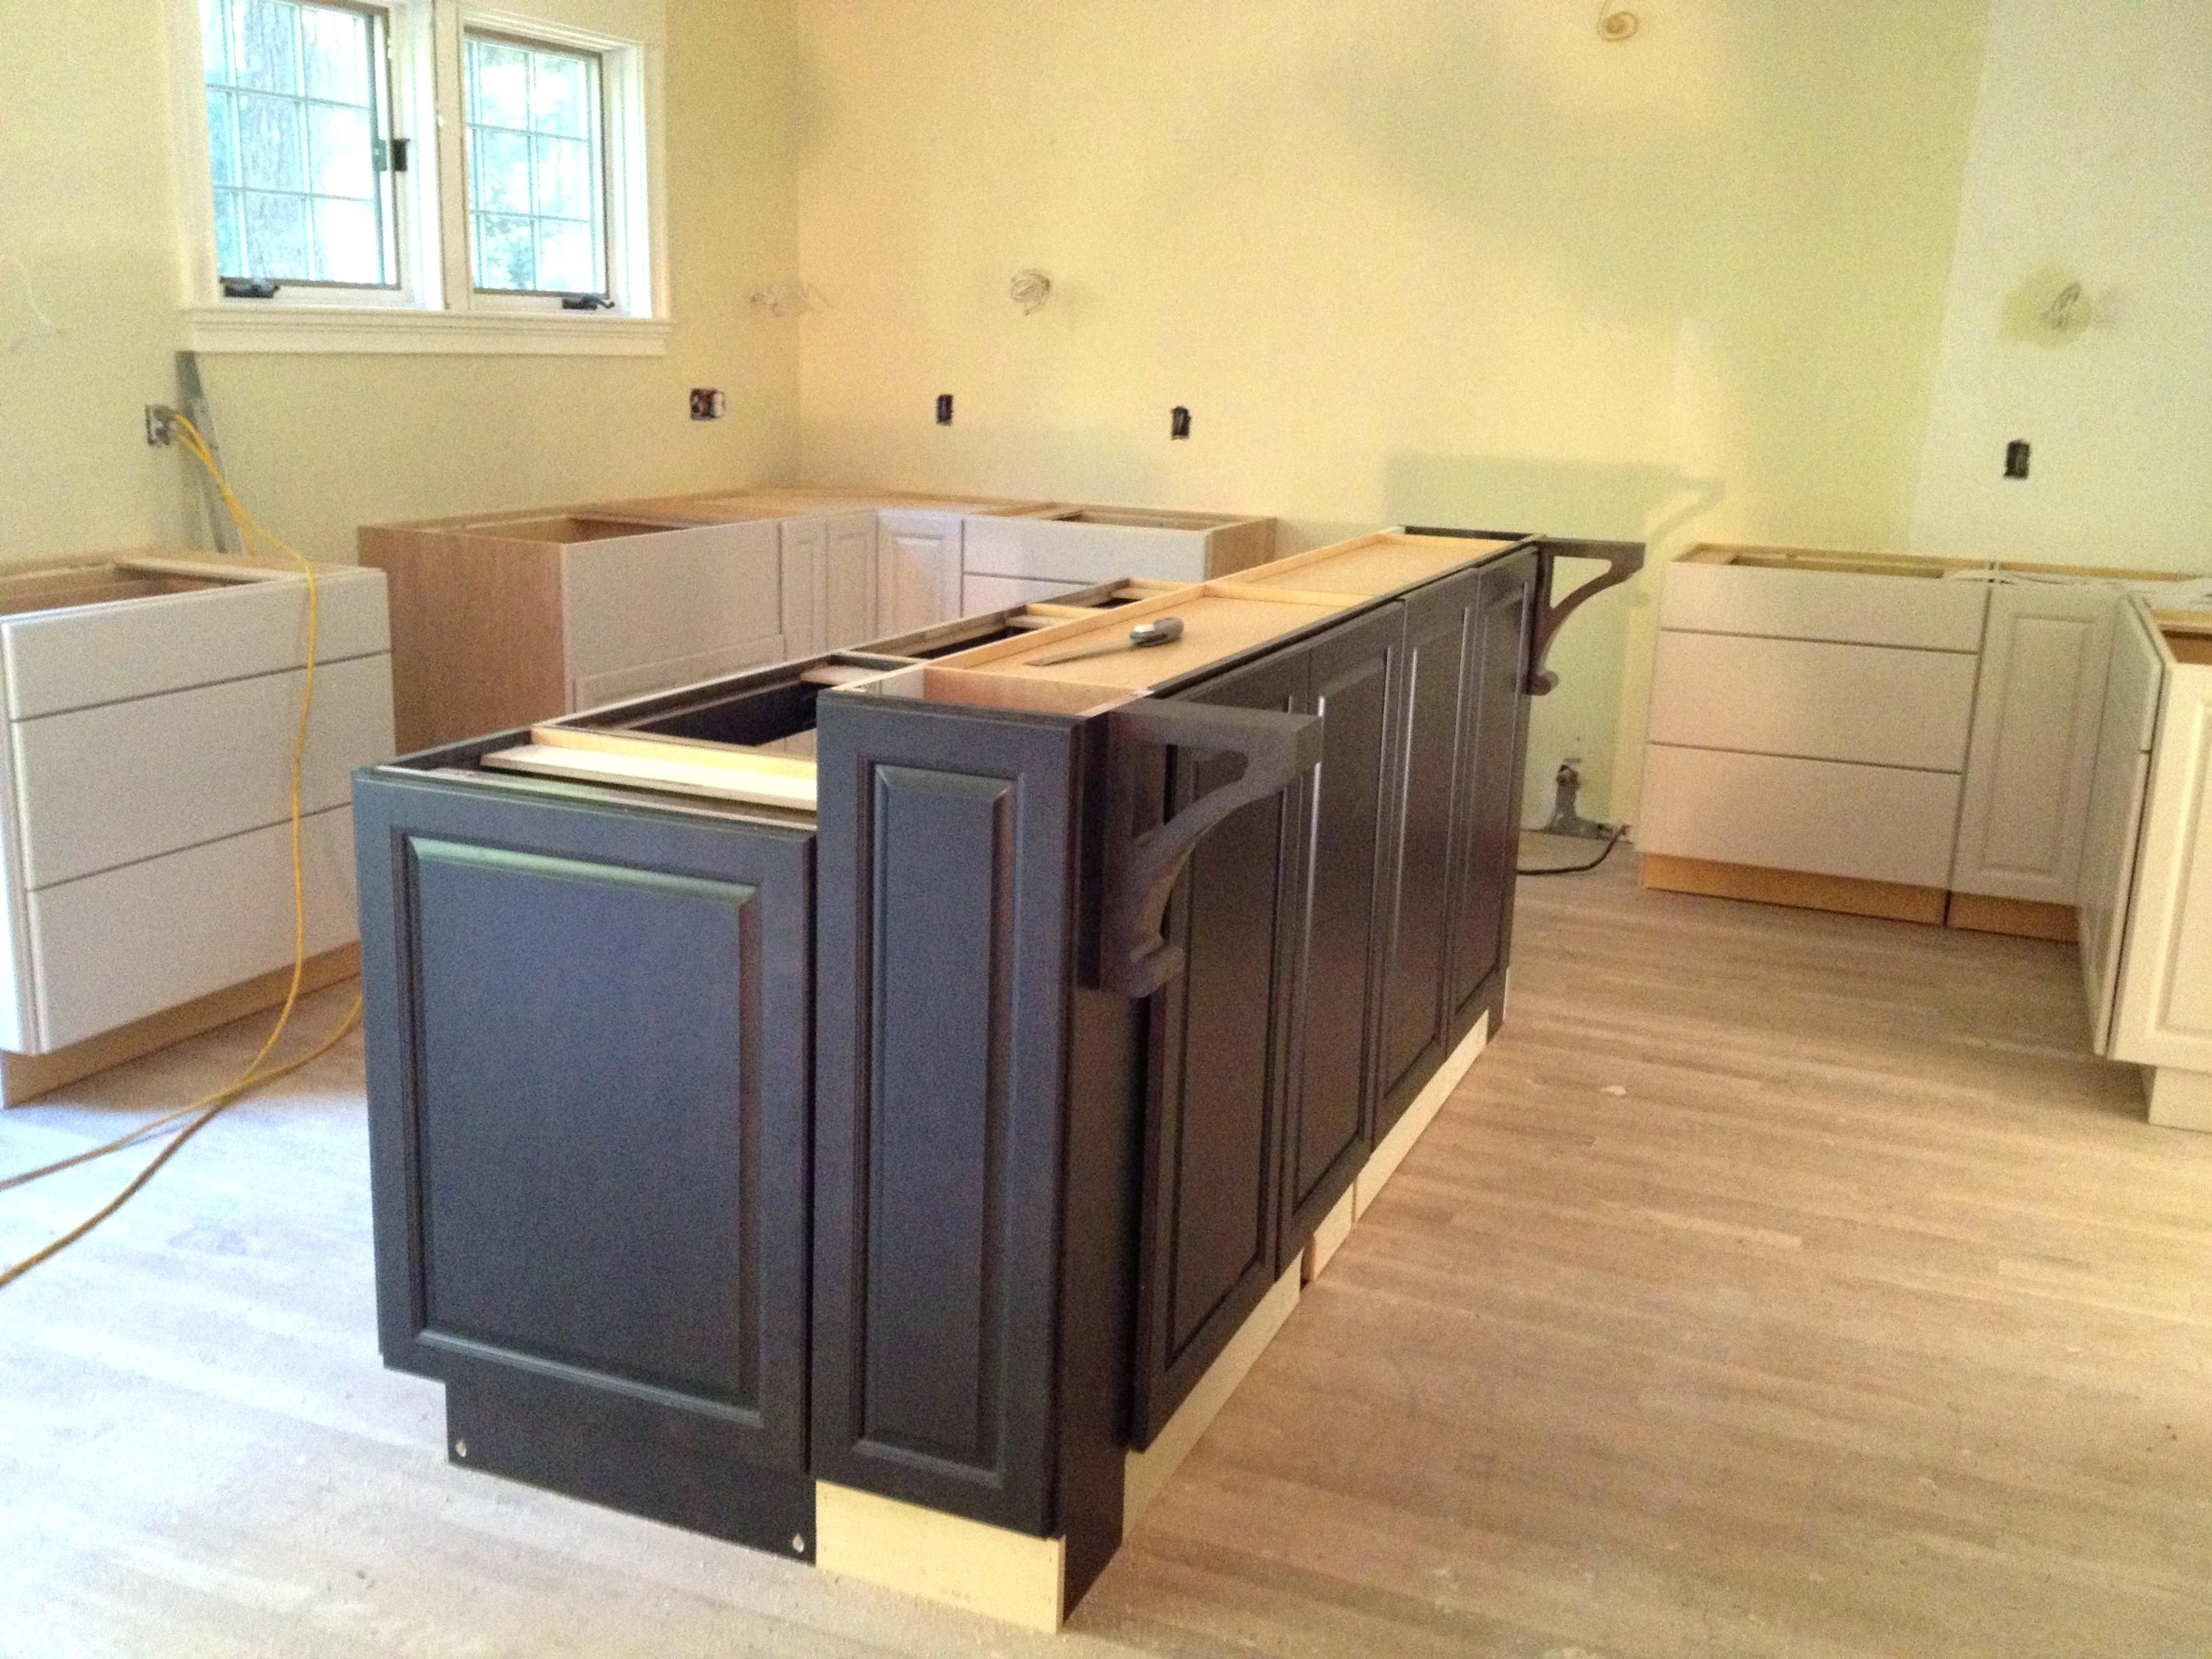 Building A Kitchen Island With Ikea Cabinets Building Kitchen Island Bar Breakfast Islnd Cbinets Ing